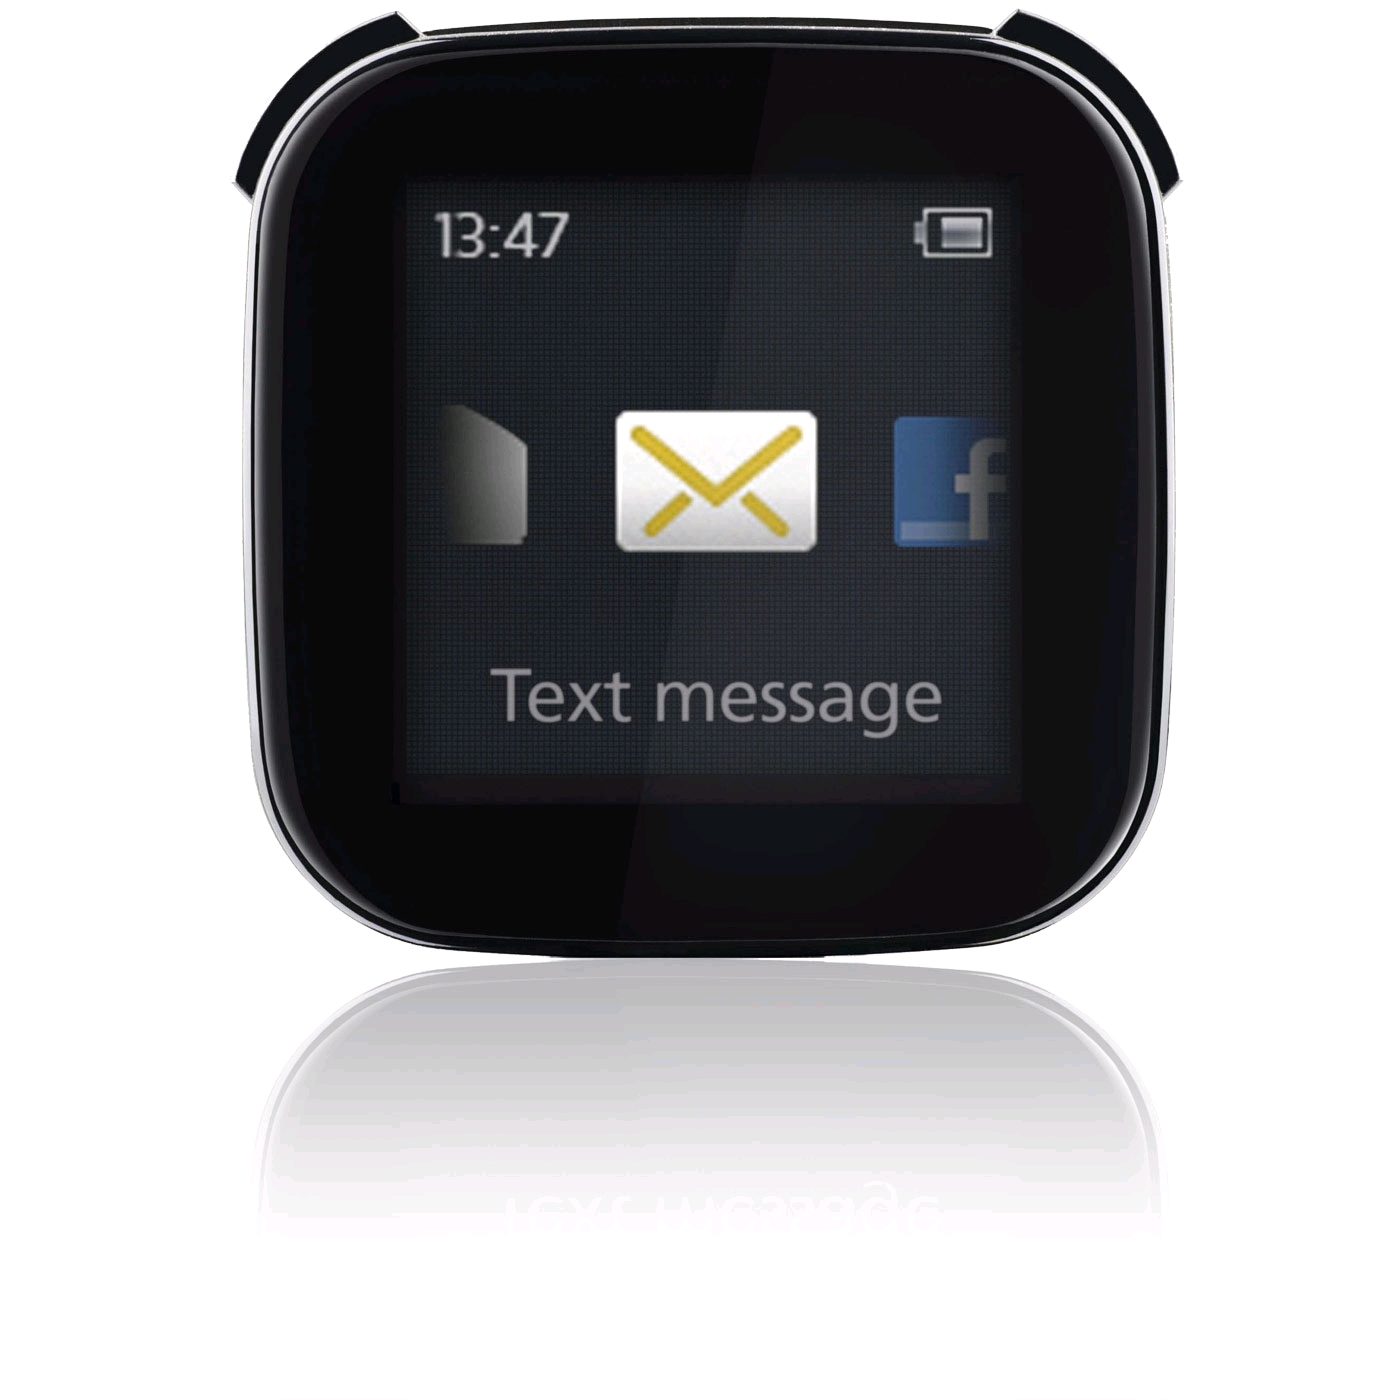 Sony Ericsson Liveview Bluetooth Remote Control Watch Best Blood Brh10 With Handset Function Smartwatch Mn2 Micro Android Display Touch Mn800